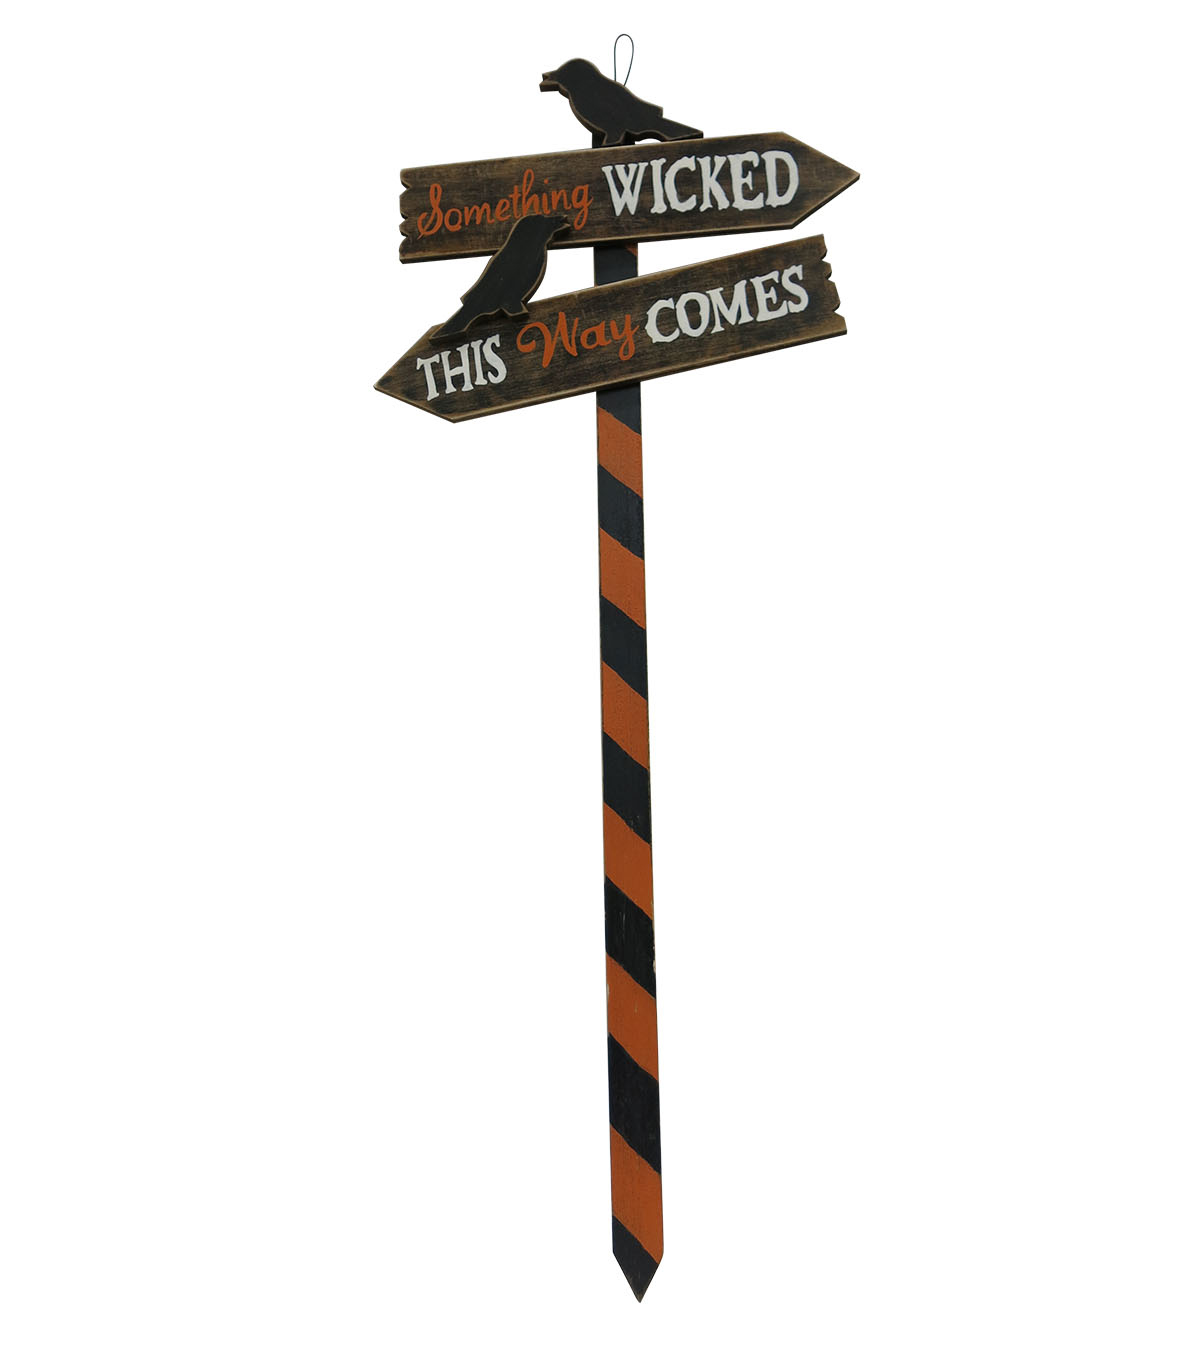 Maker\u0027s Halloween Wood Yard Stake-Something Wicked This Way Comes